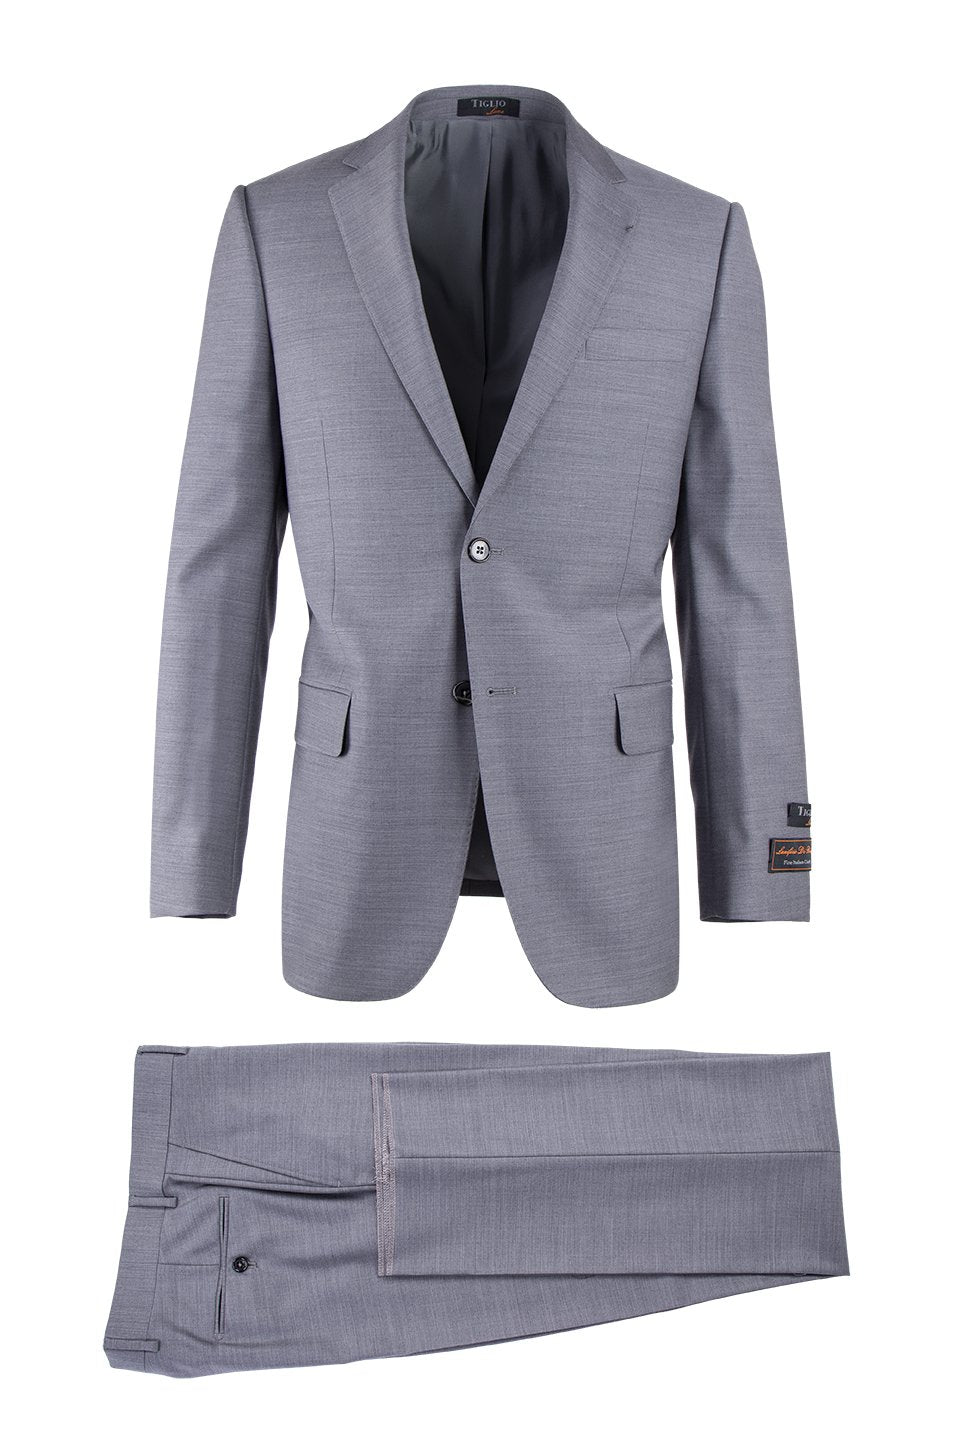 Novello Light Gray, Modern Fit, Pure Wool Suit by Tiglio Luxe